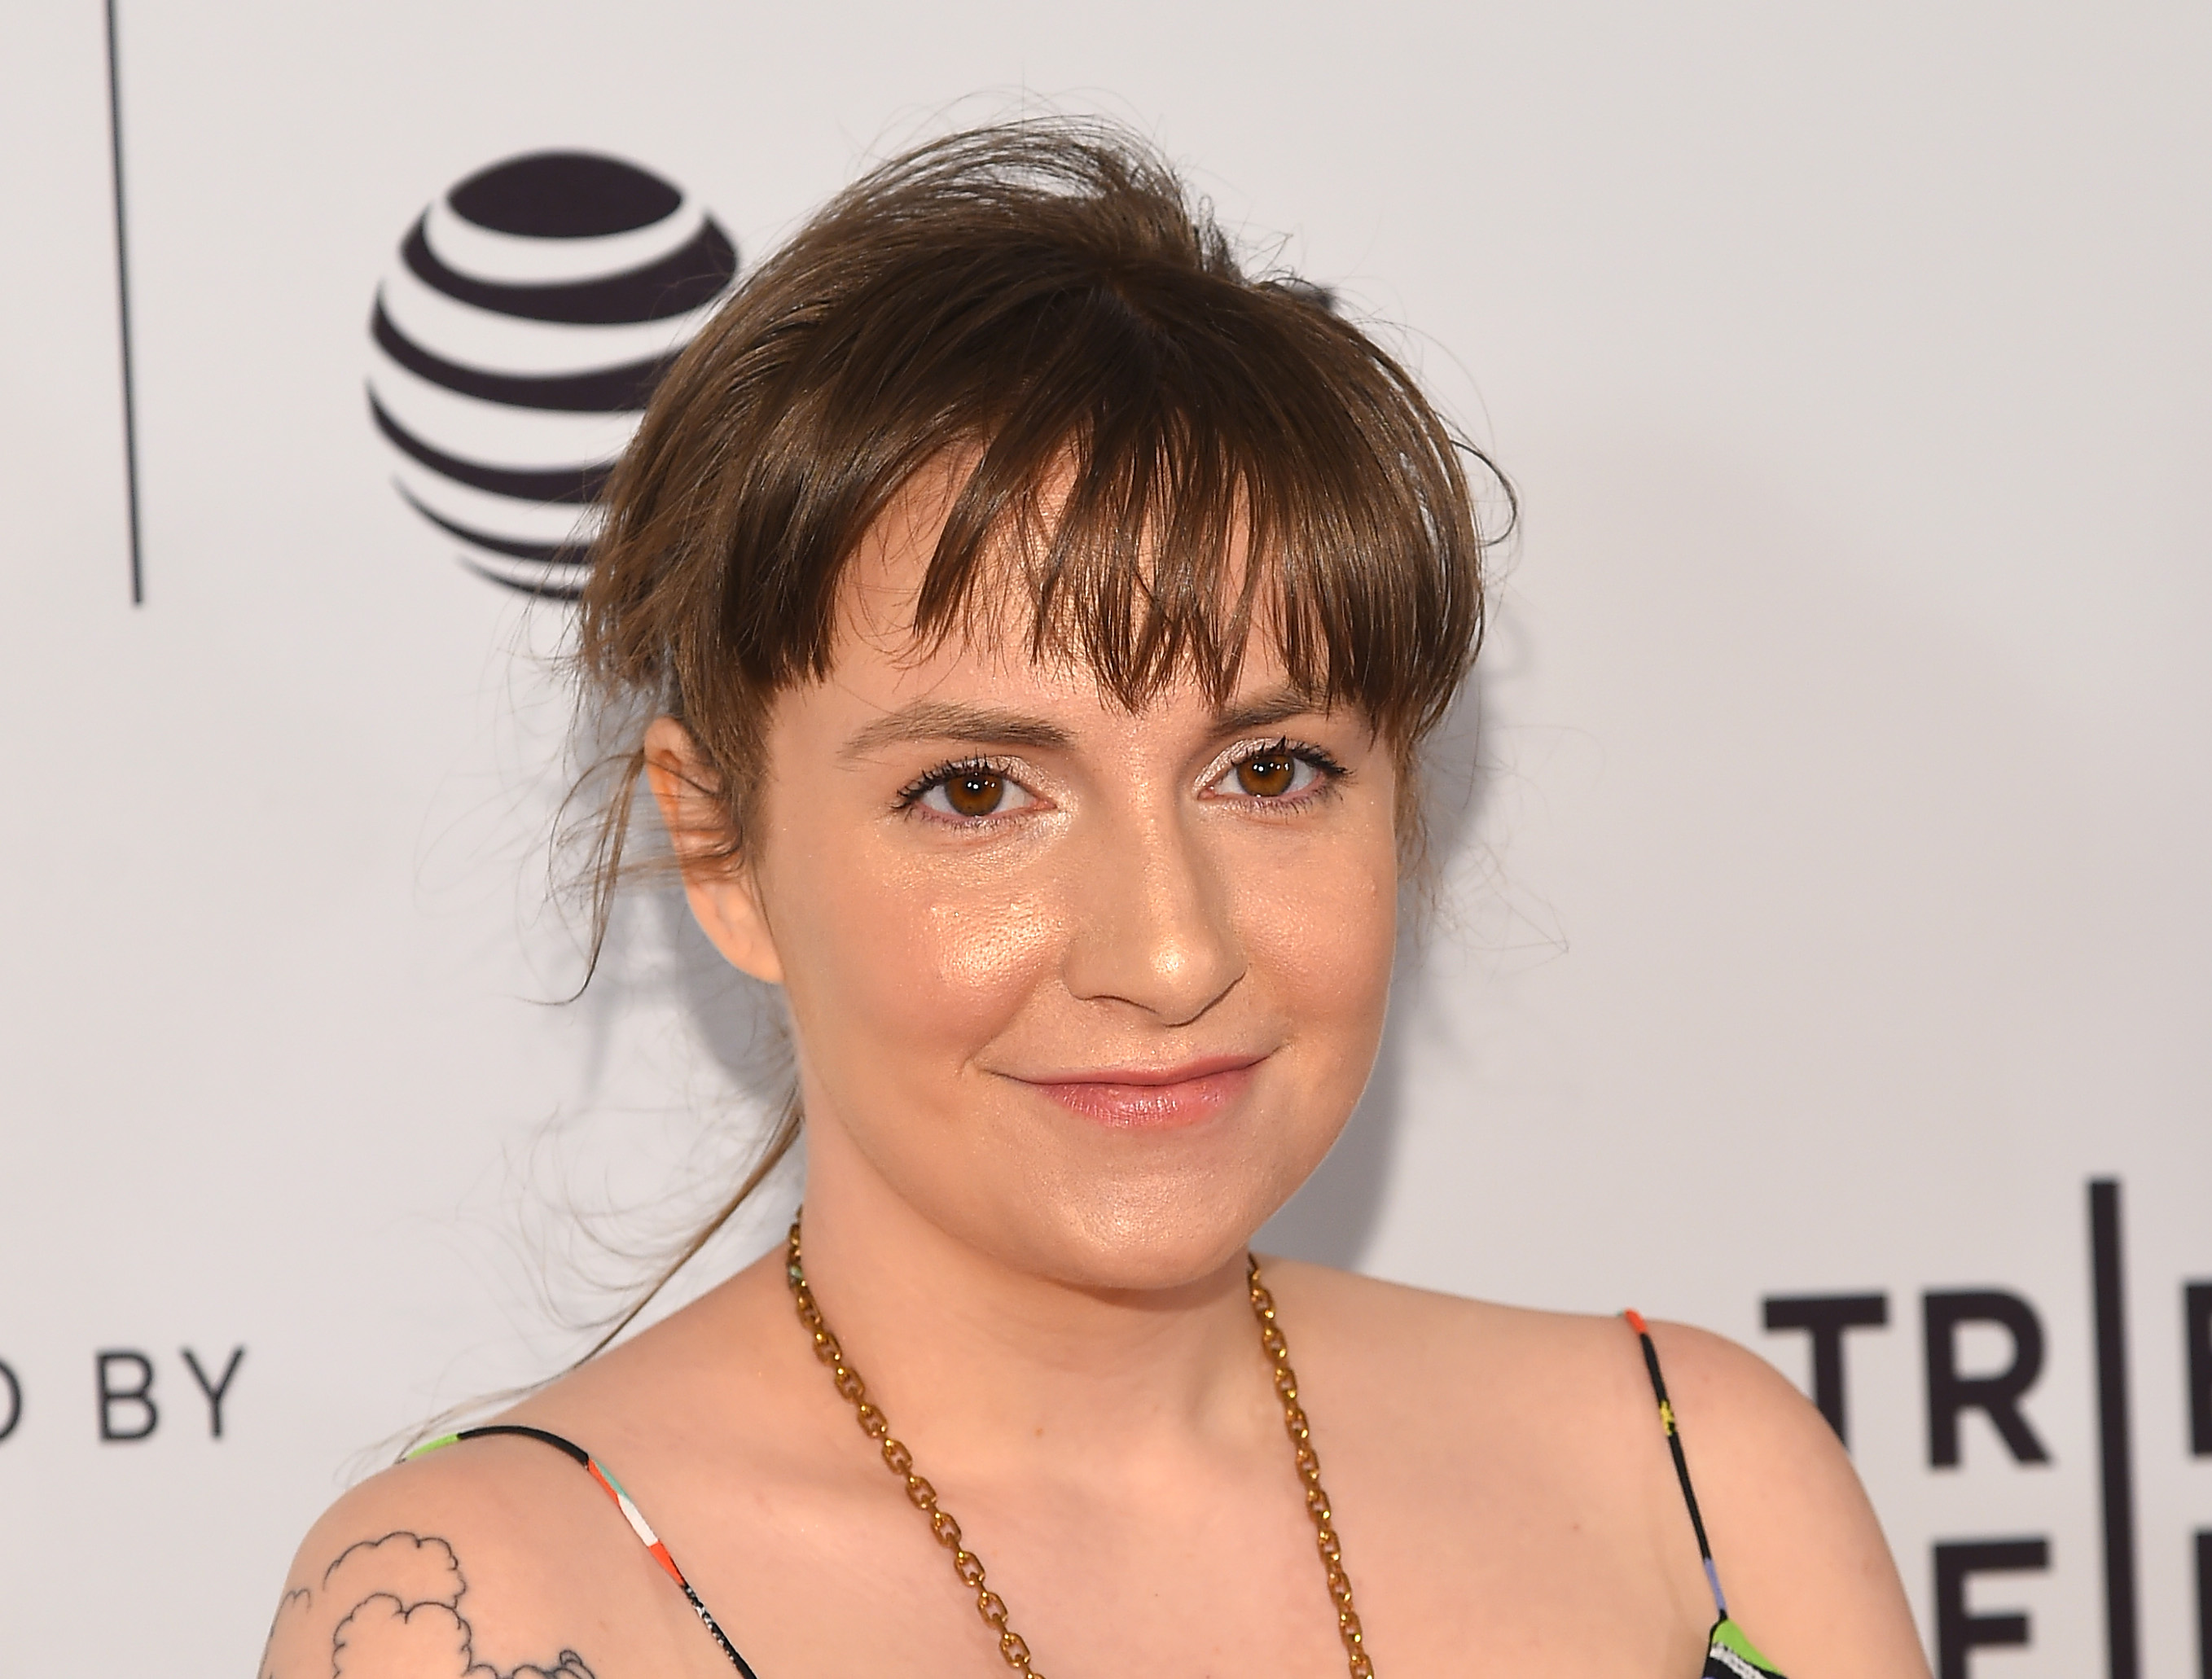 Lena Dunham attends  My Art  premiere during the 2017 Tribeca Film Festival at Cinepolis Chelsea in New York on April 22, 2017.